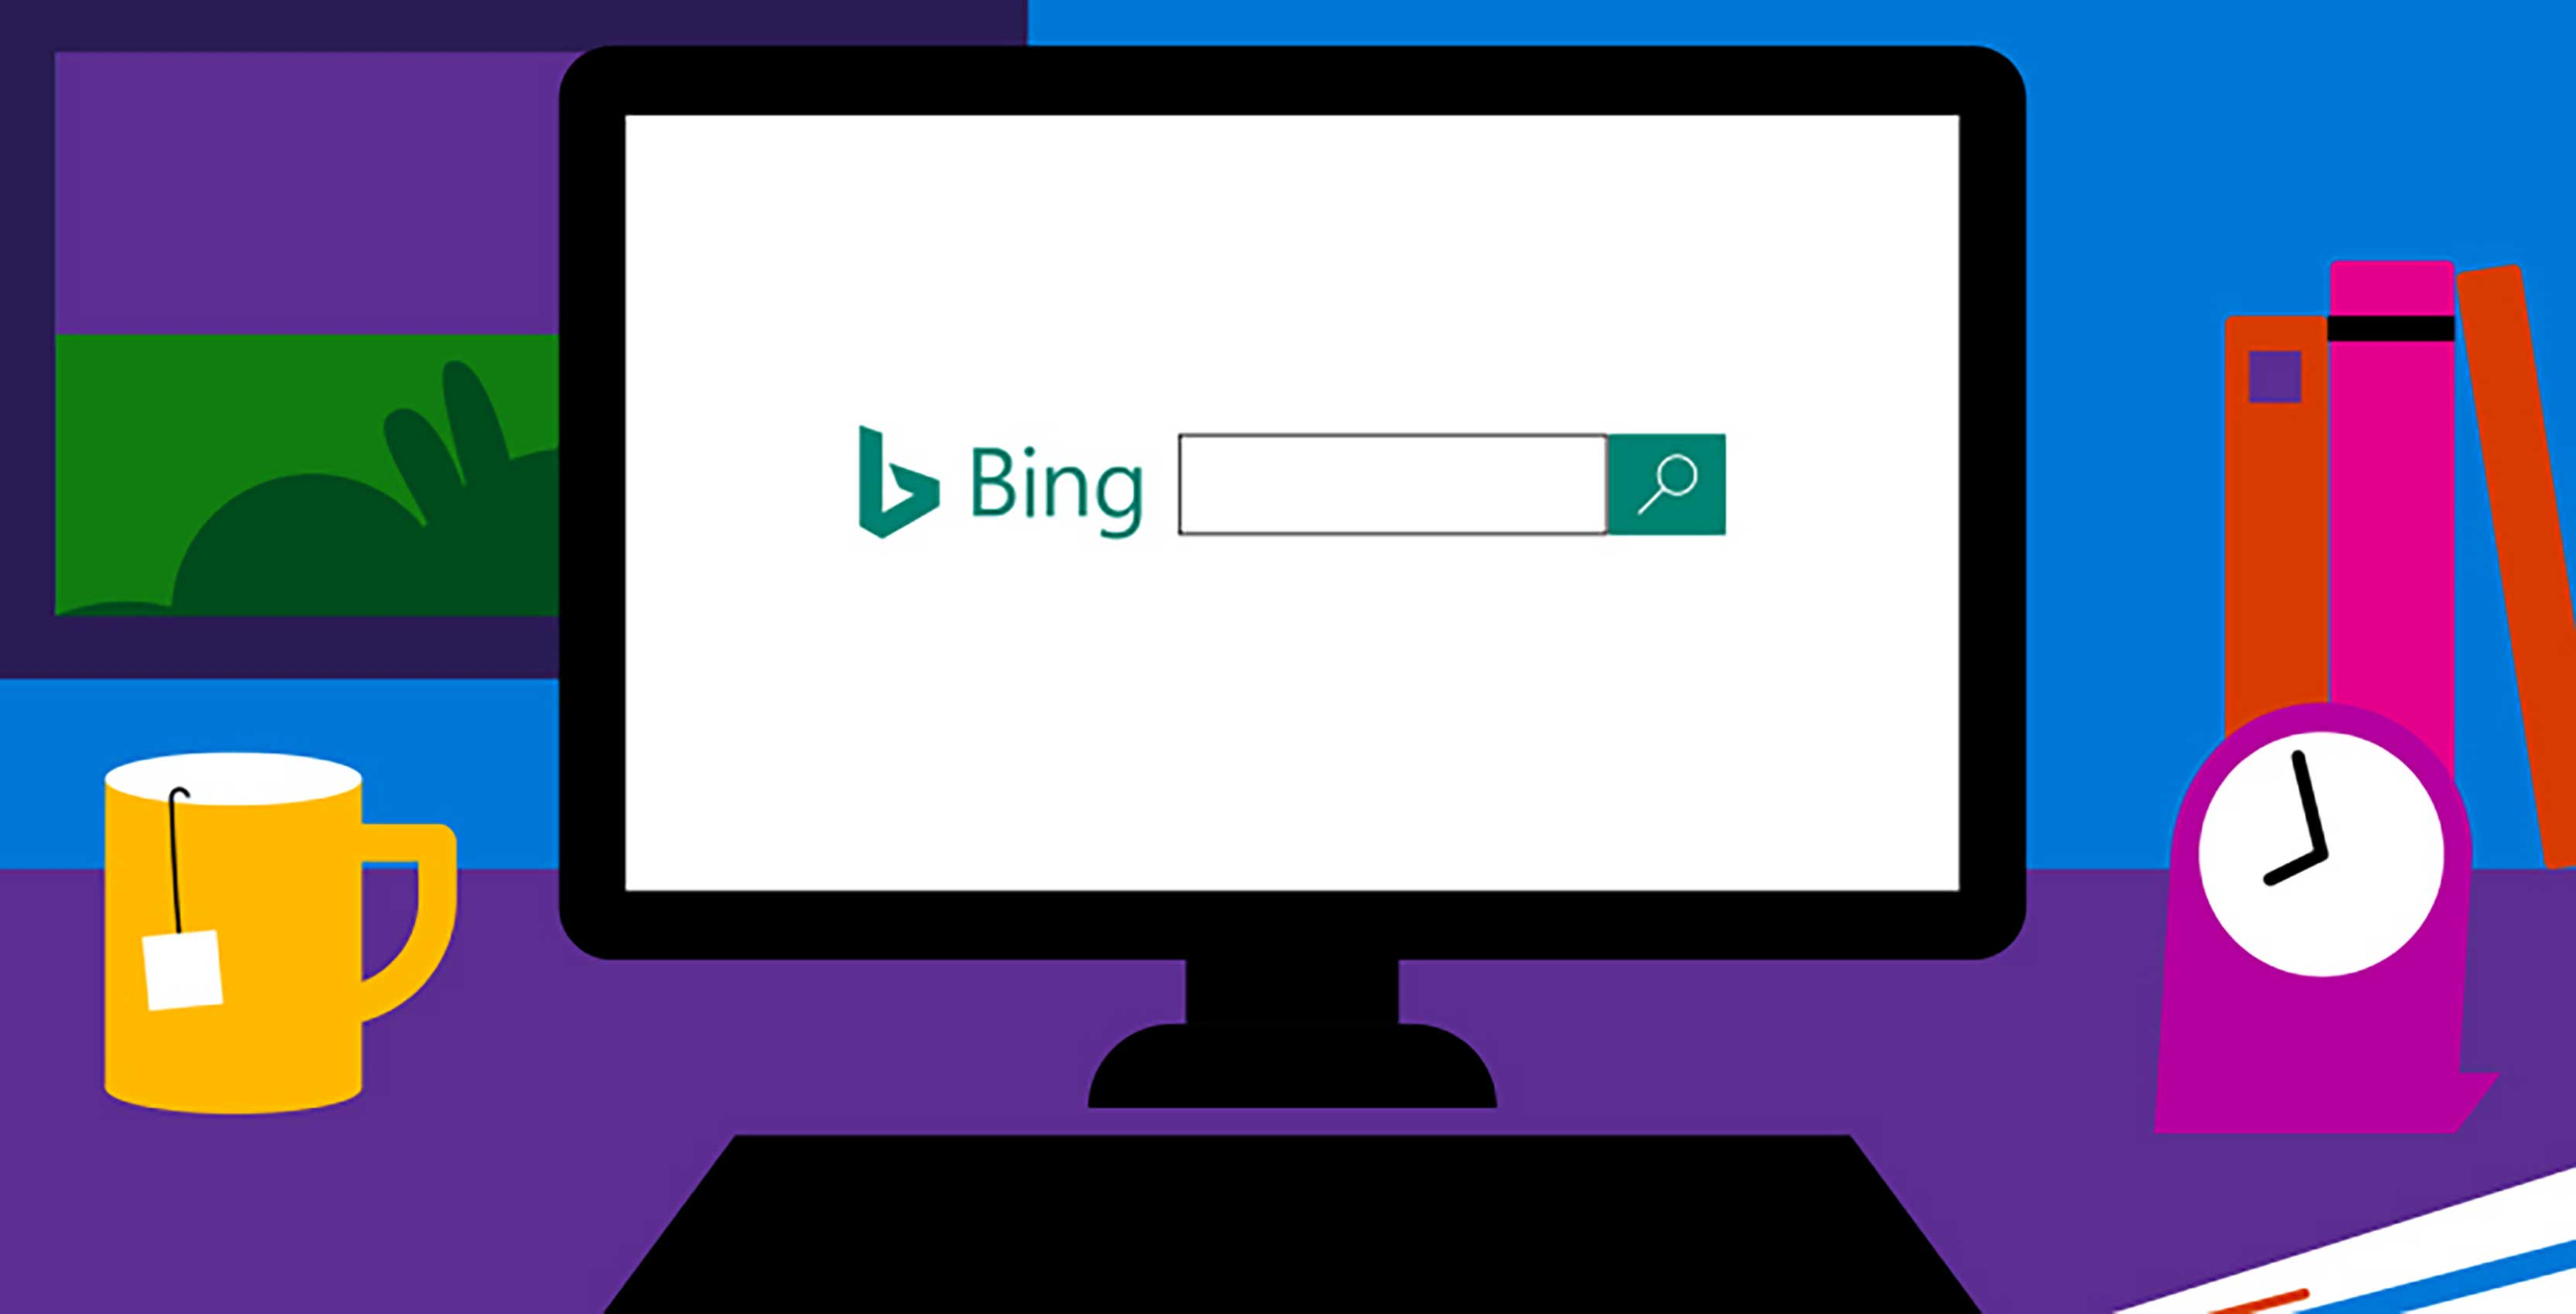 Microsoft Bing search engine